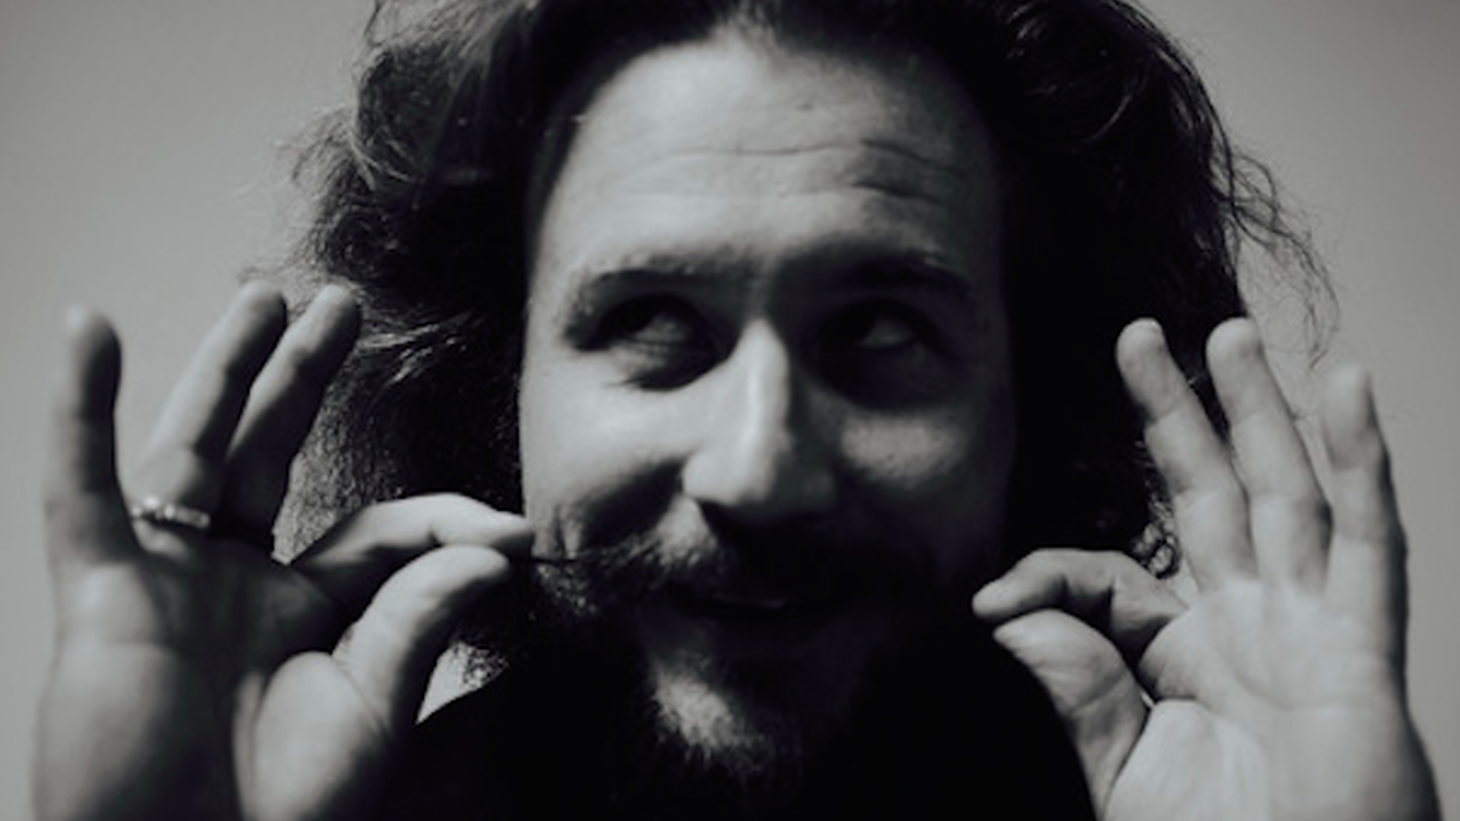 My Morning Jacket frontman Jim James dropped a gorgeous record of covers called Tribute To 2 late last year.